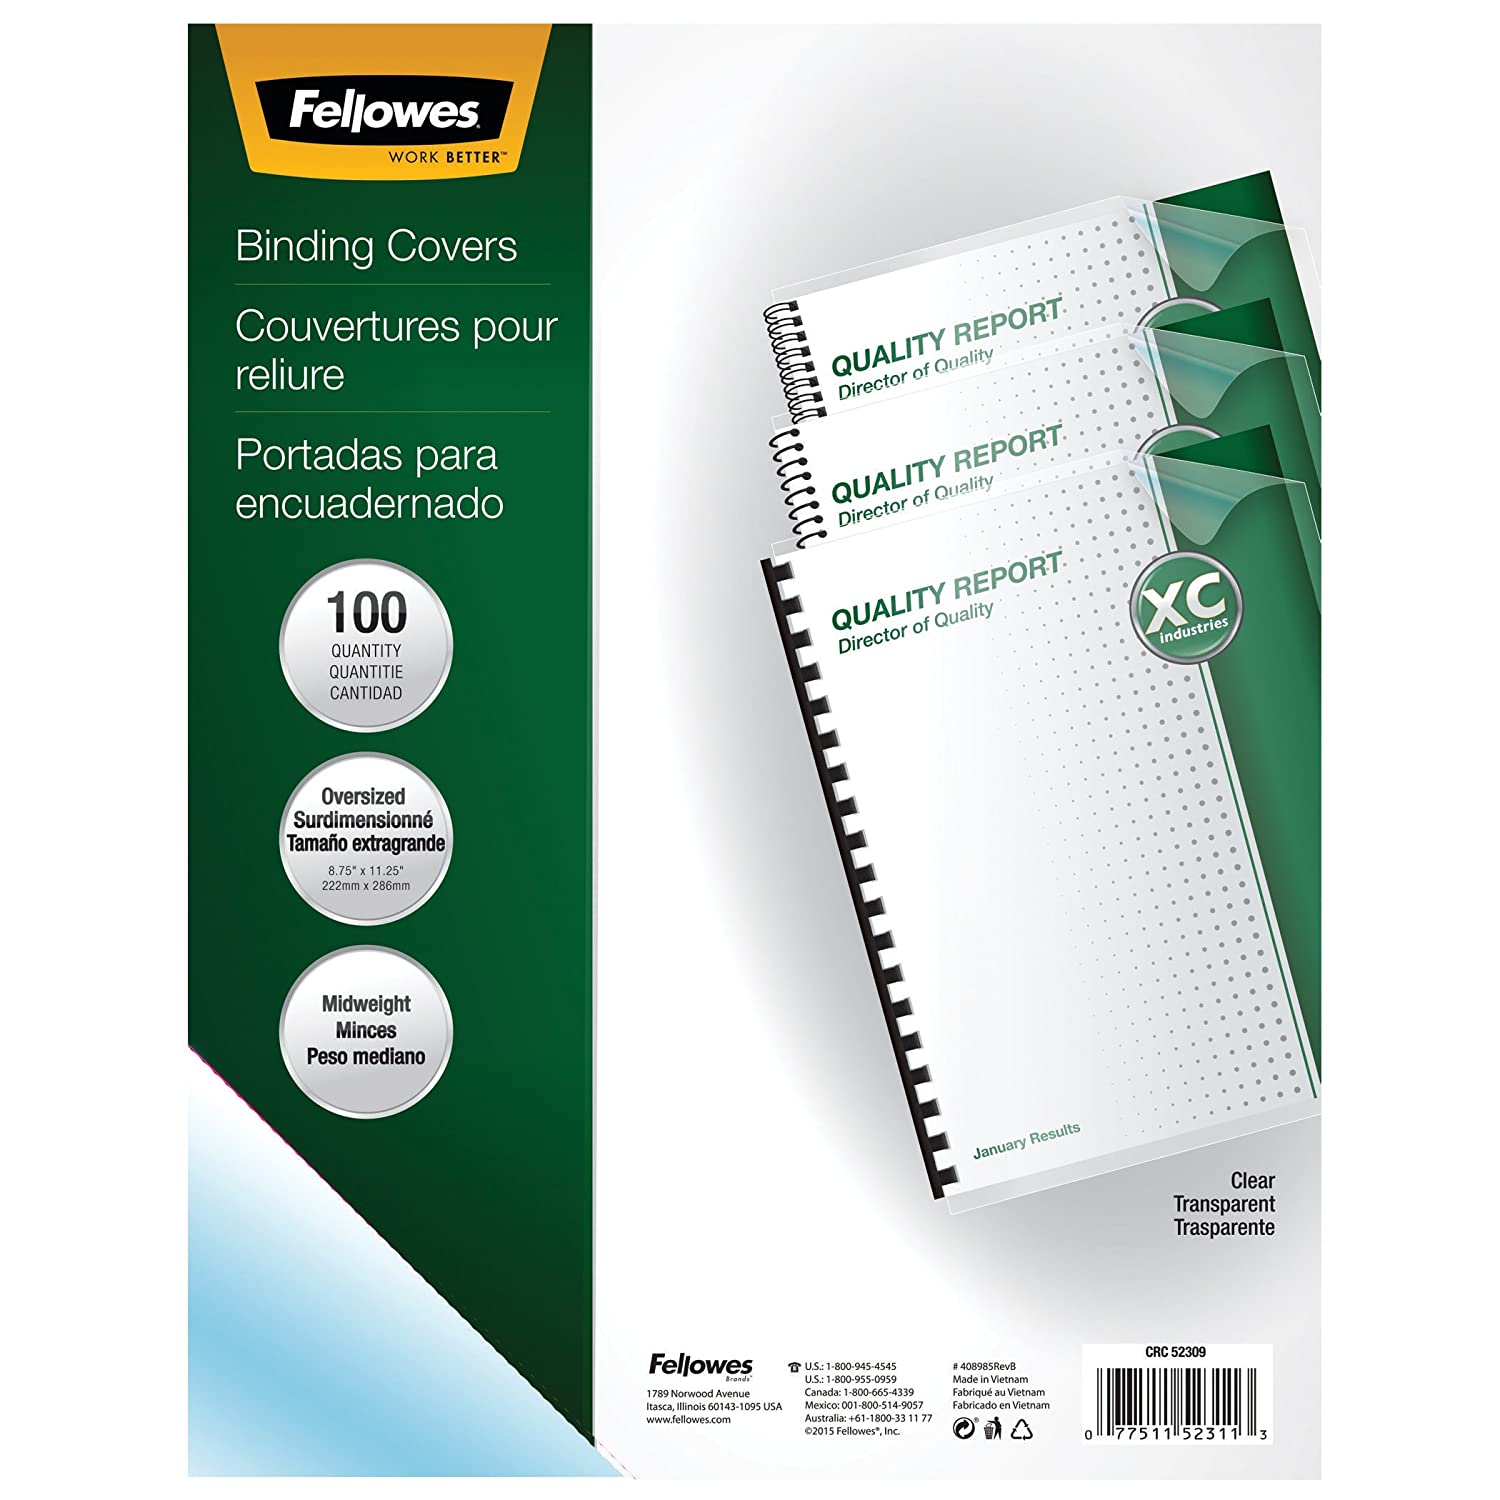 Fellowes 52309 8.75 x 11.25-Inches Transparent Presentation Binding Cover, PVC Material, 25 Per Pack (Clear) Office Supplies